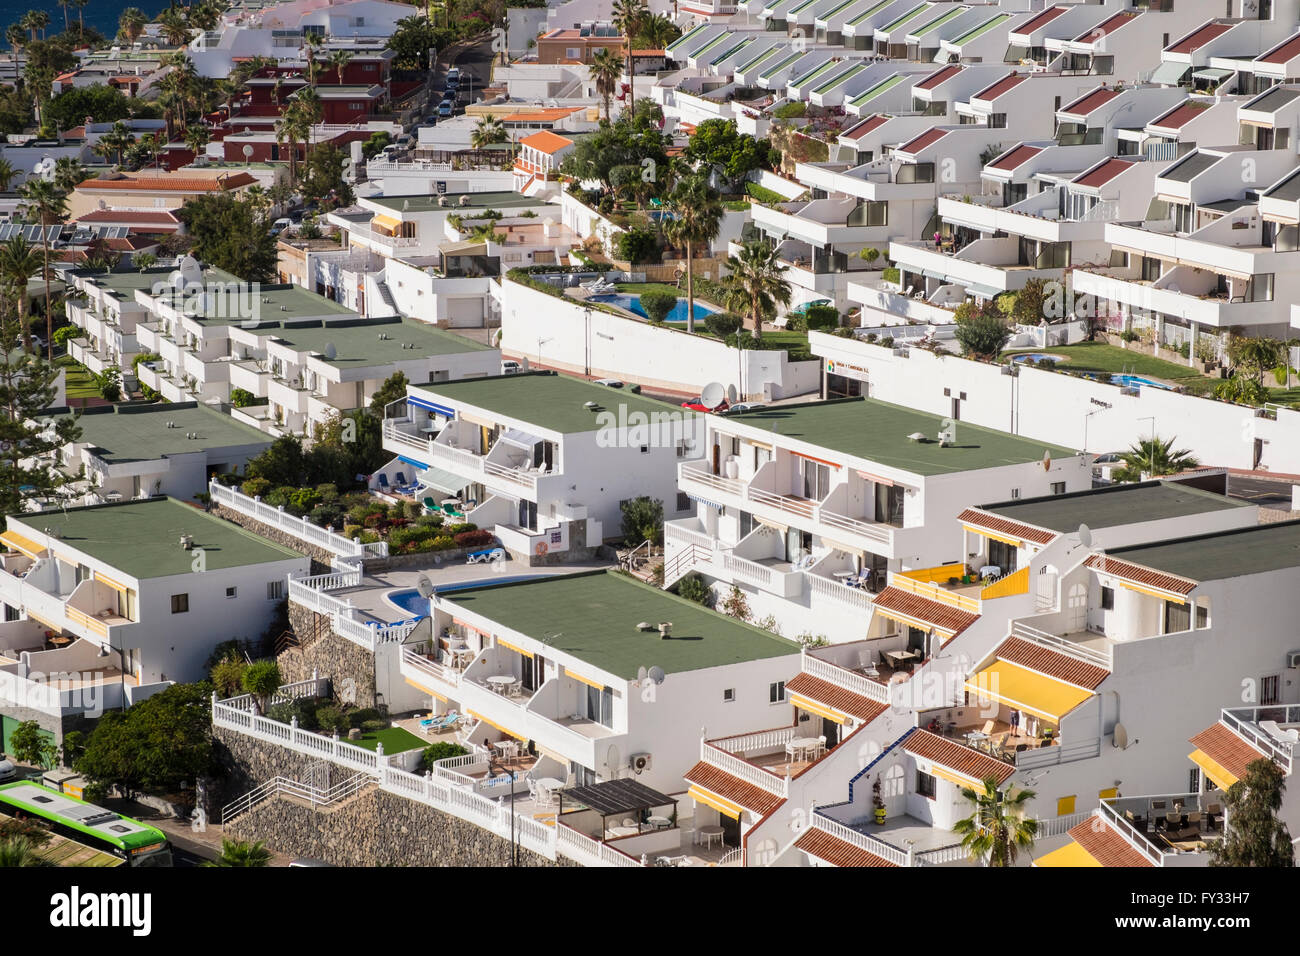 holiday homes and apartments on the hillside in los gigantes stock